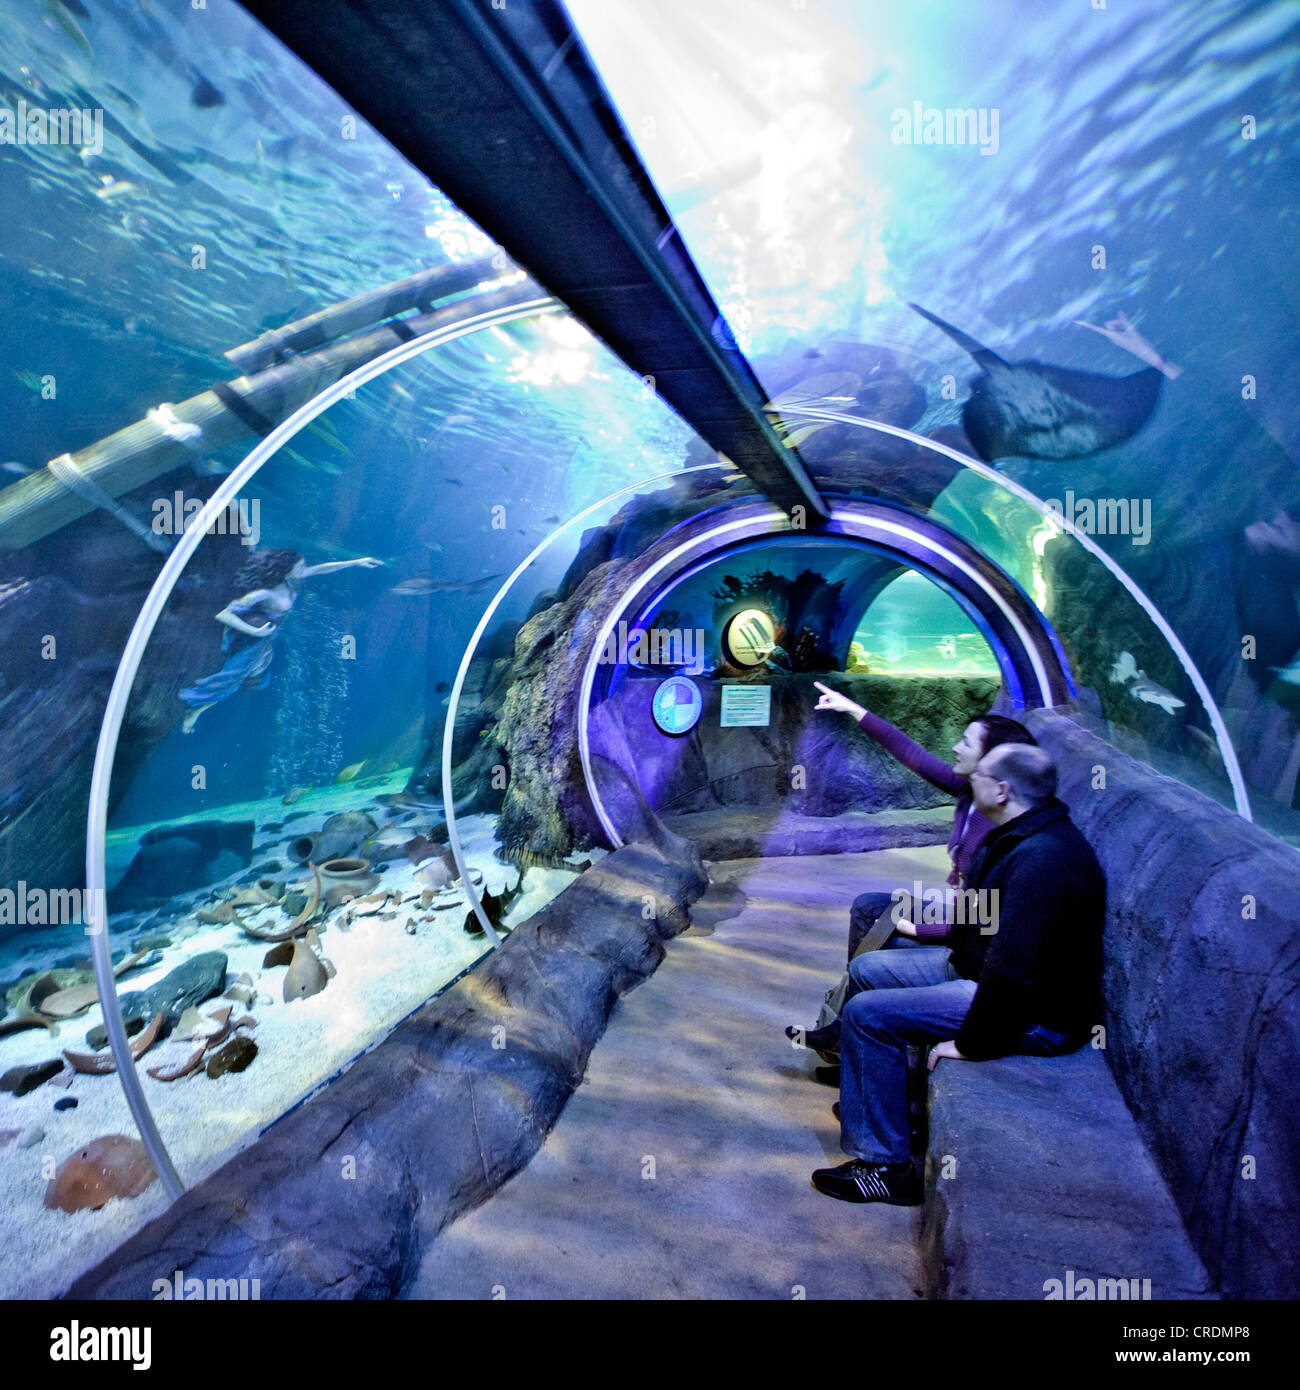 aquarium germany